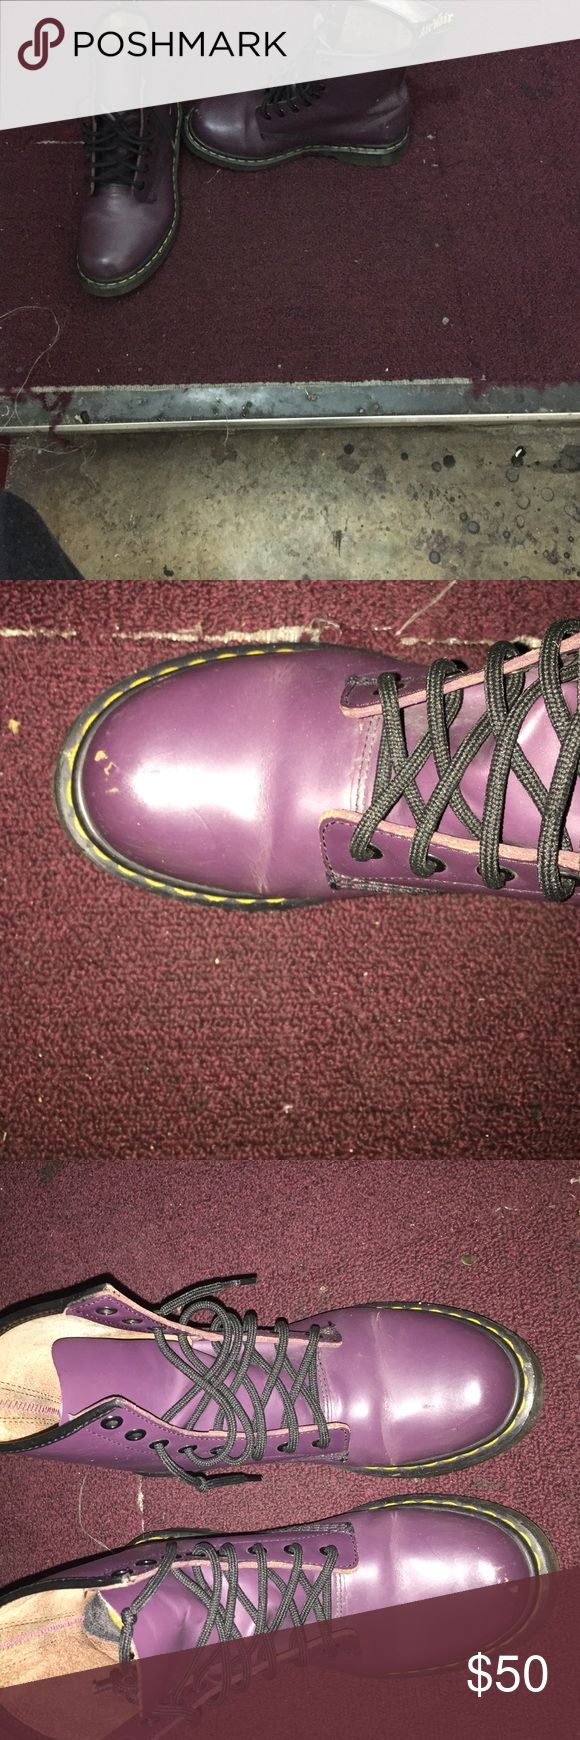 Purple dr Martin boots Purple dr Martin boots had for a very long time Baught these because purple is my favorite color but I don't wear them any more they are creased and it does have a smudged mark in the front other wise in good condition will clean before shipping Shoes Lace Up Boots